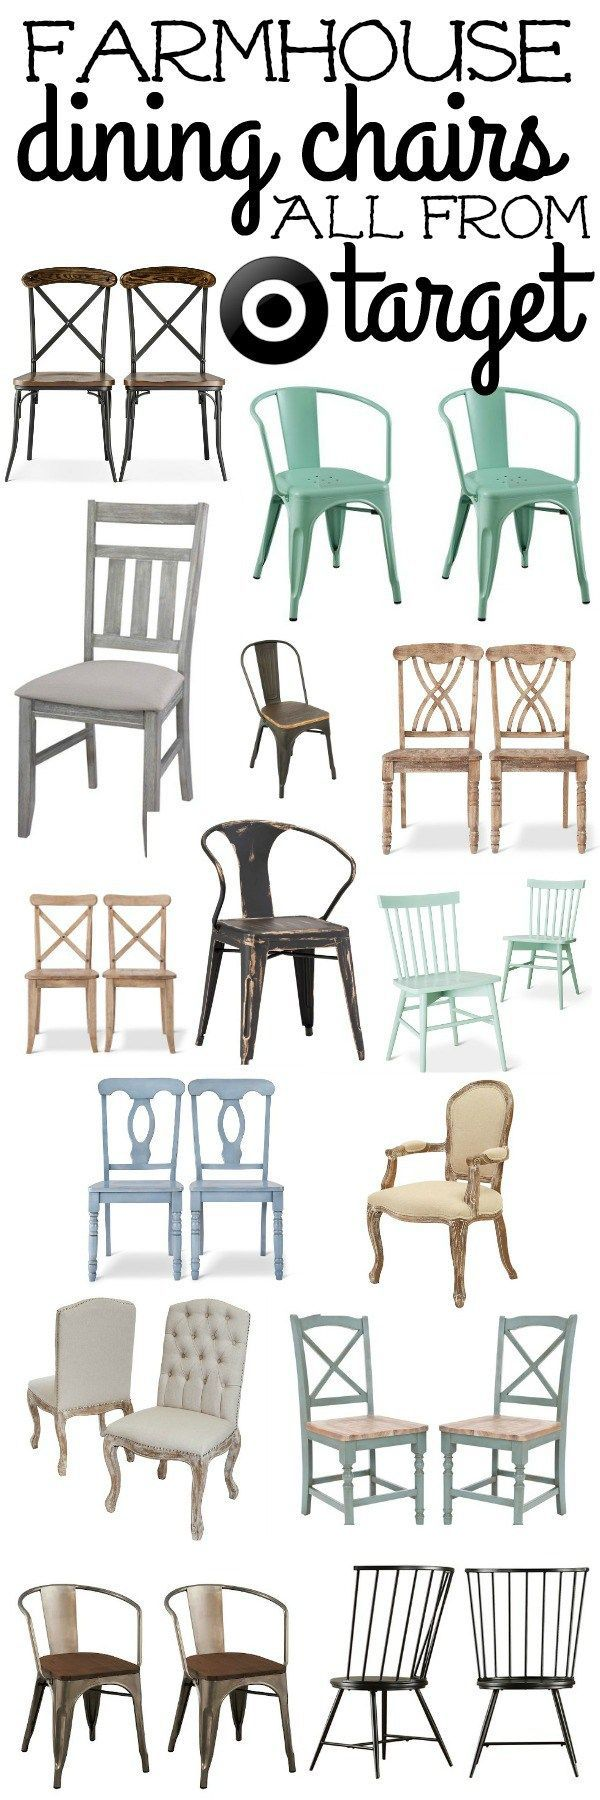 Farmhouse Dining Chairs | Liz Marie | Bloglovin'